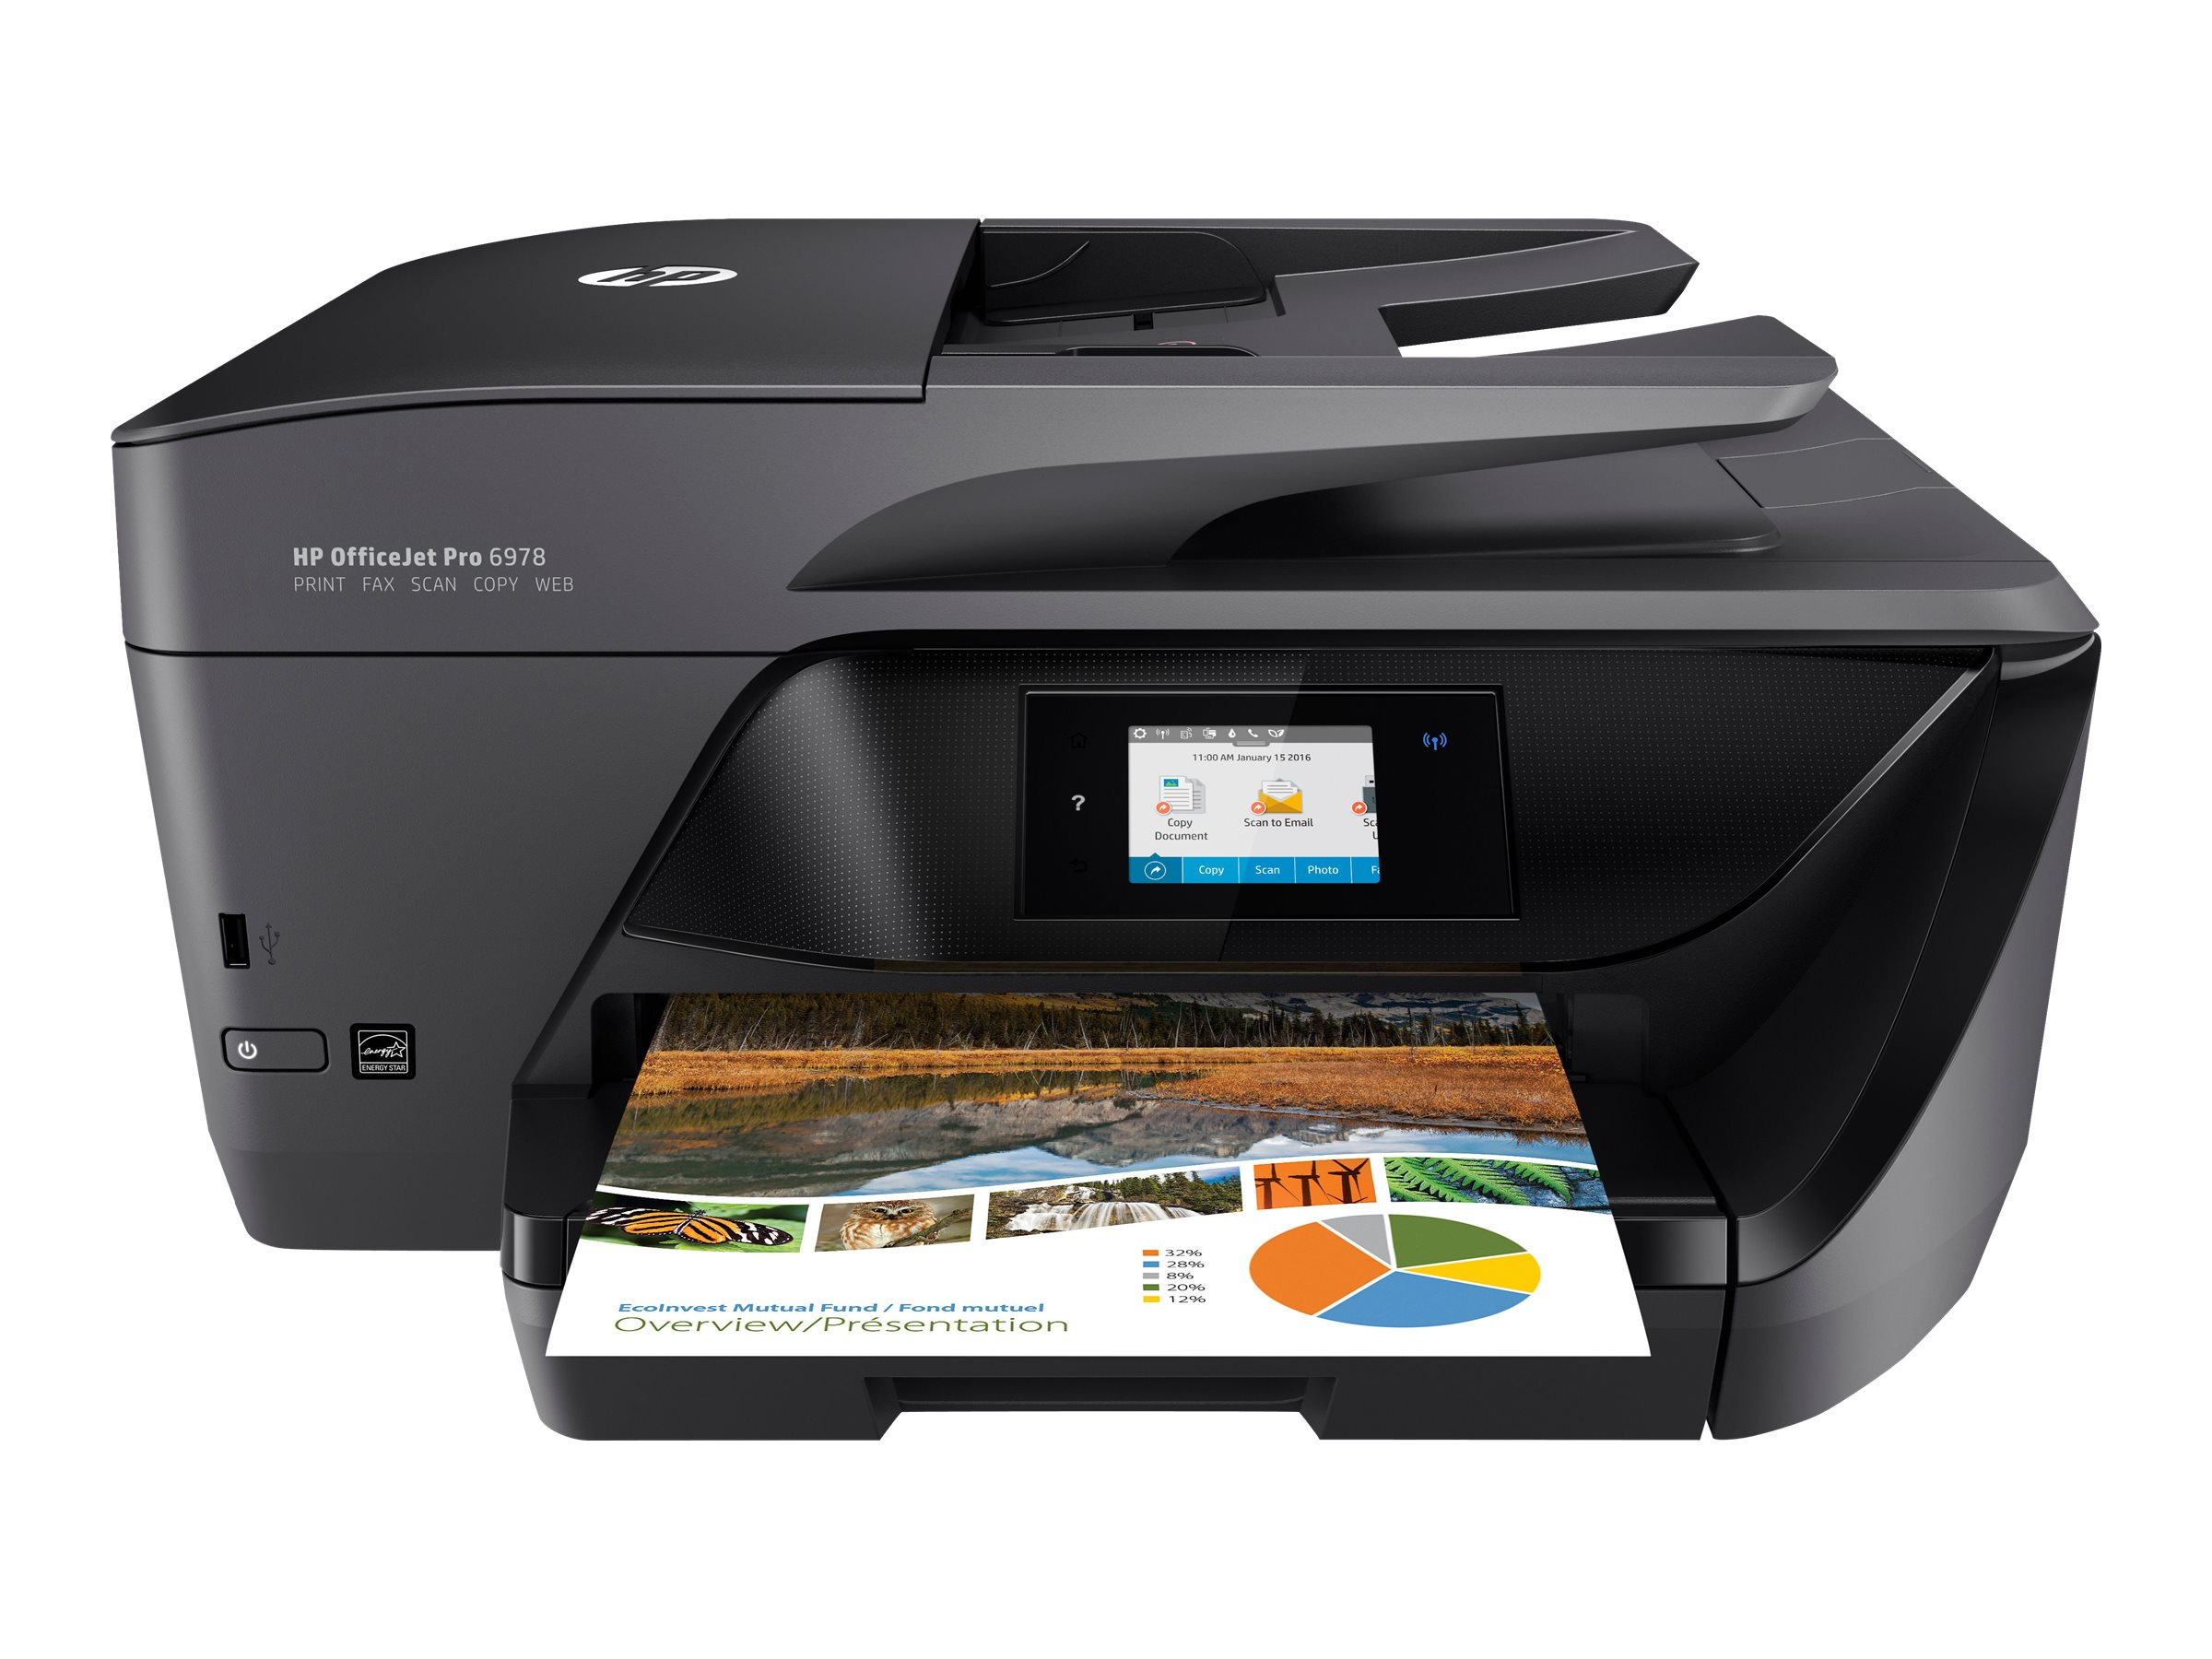 Image for Hp Officejet Pro 6978 All-In-One - Multifunction Printer (Color) from Circuit City